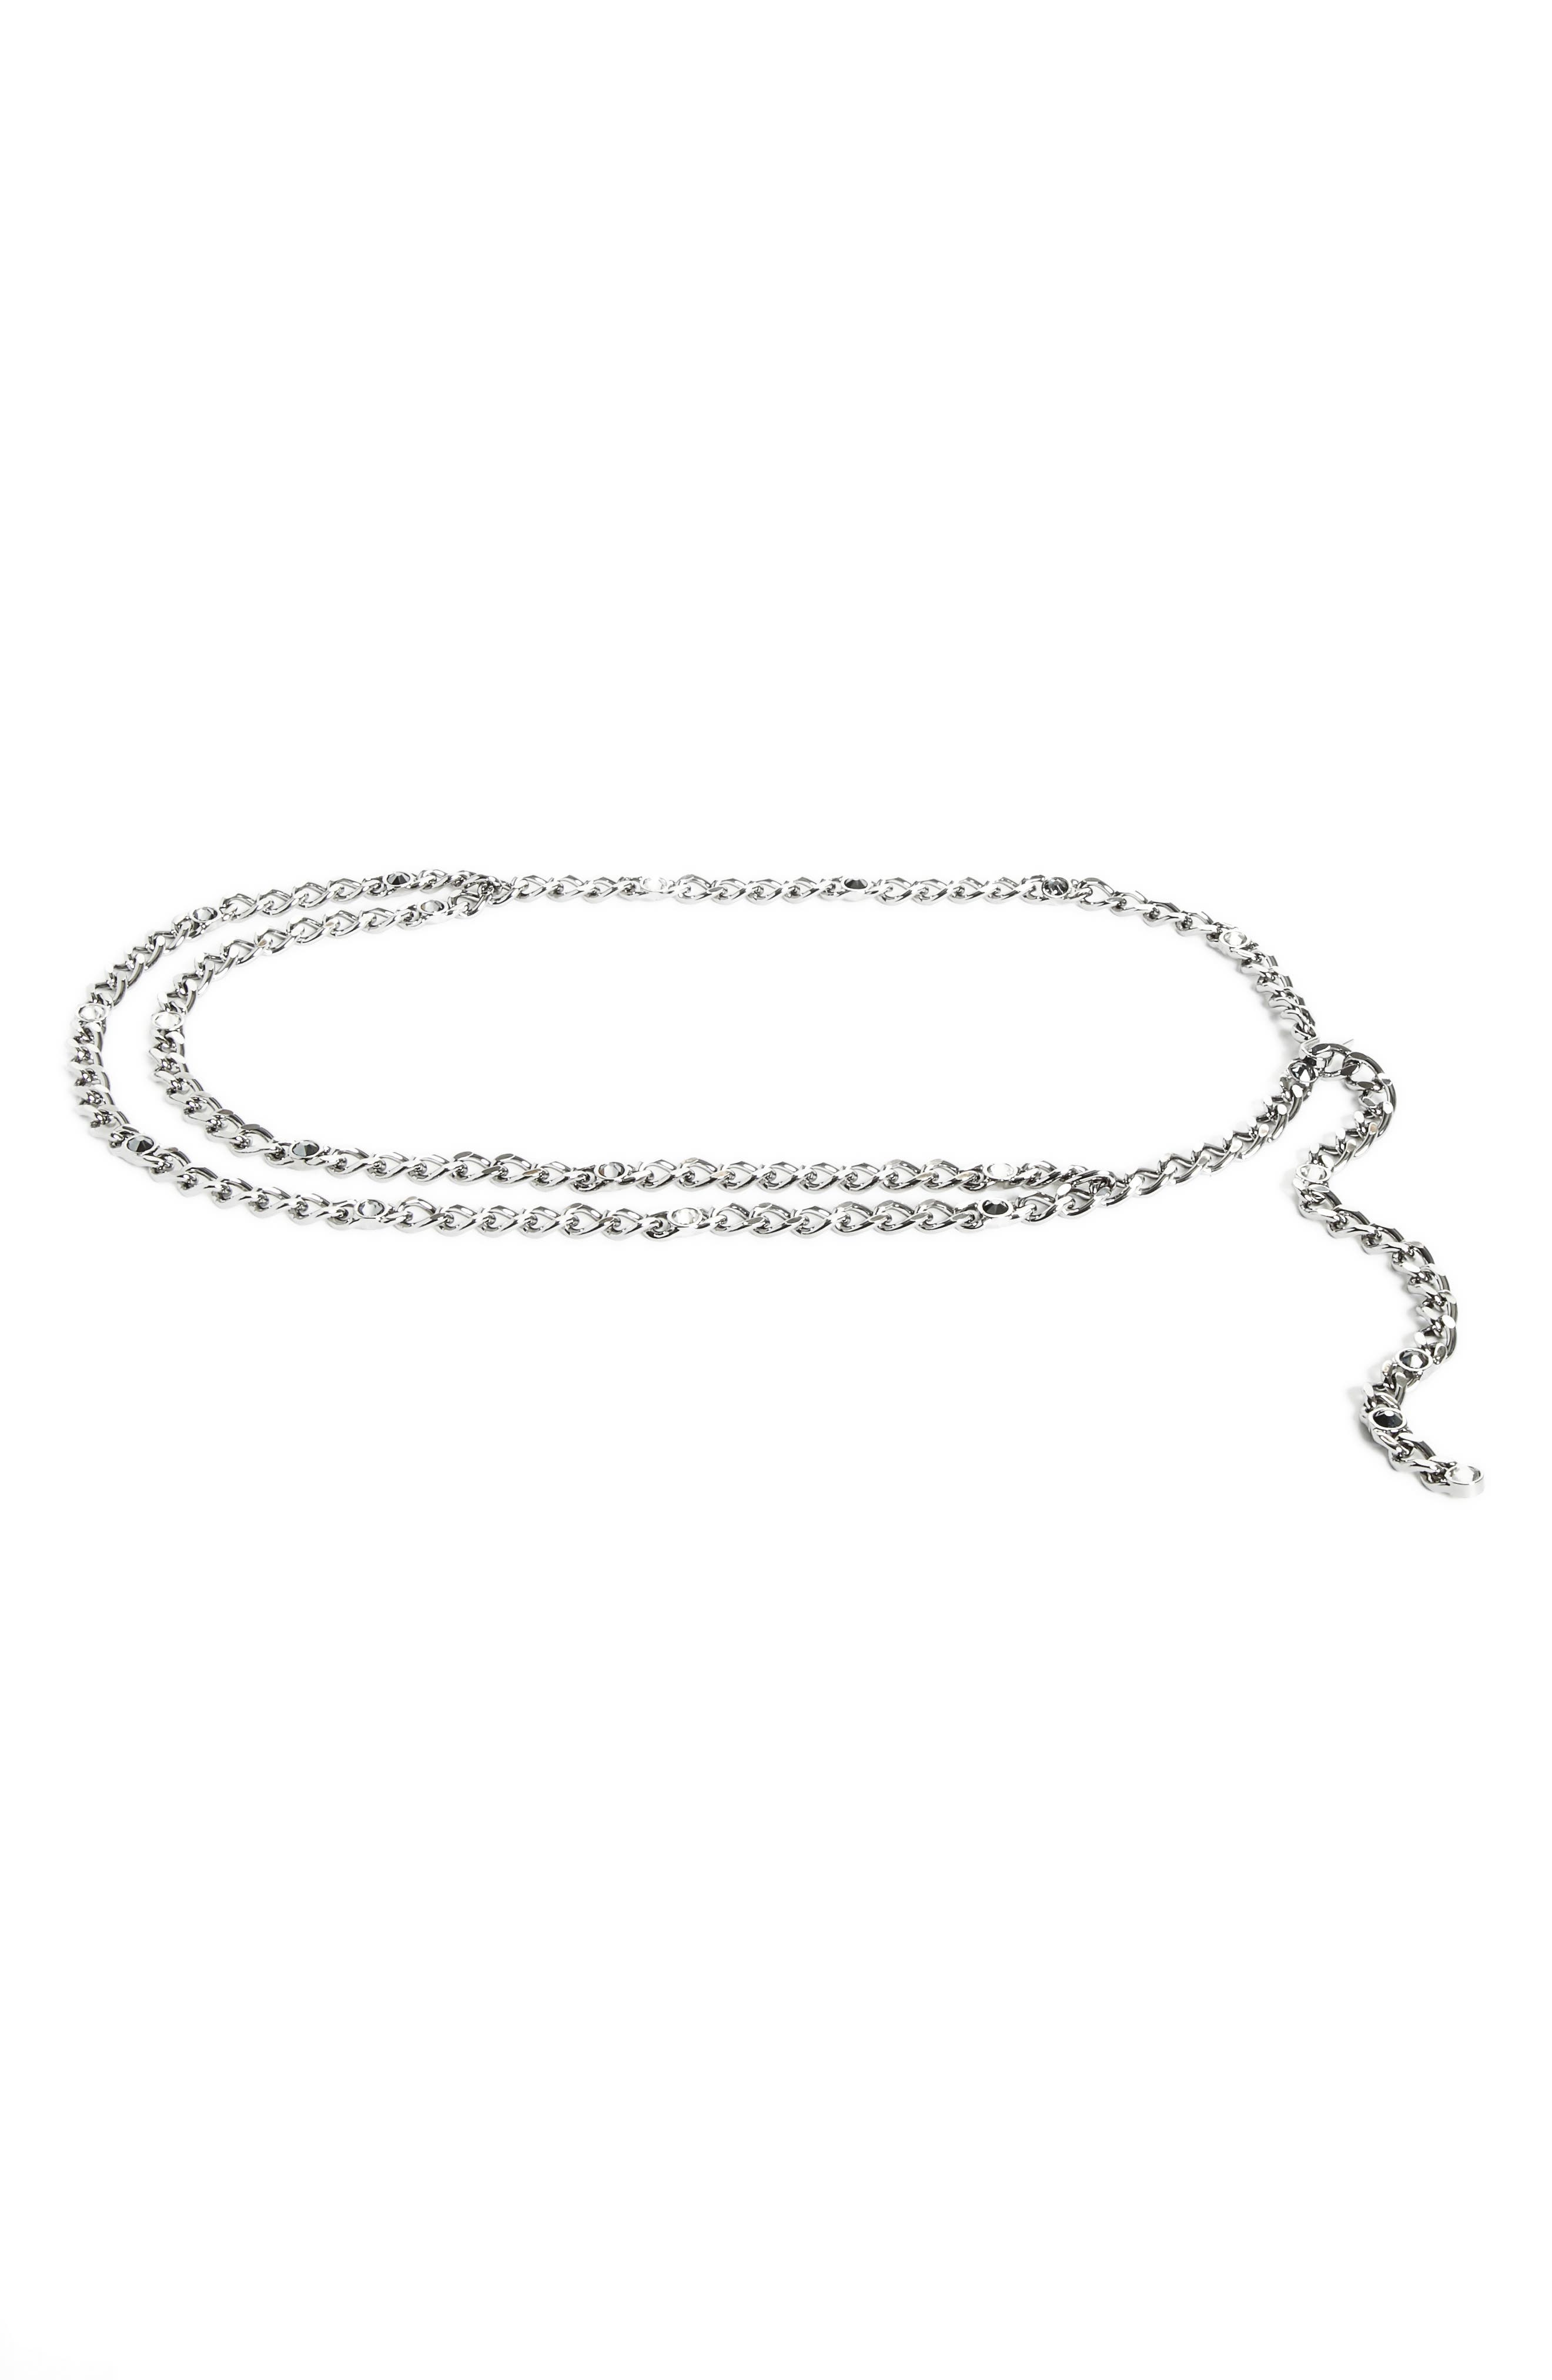 Swarovski Crystal Chain Belt,                         Main,                         color, 040